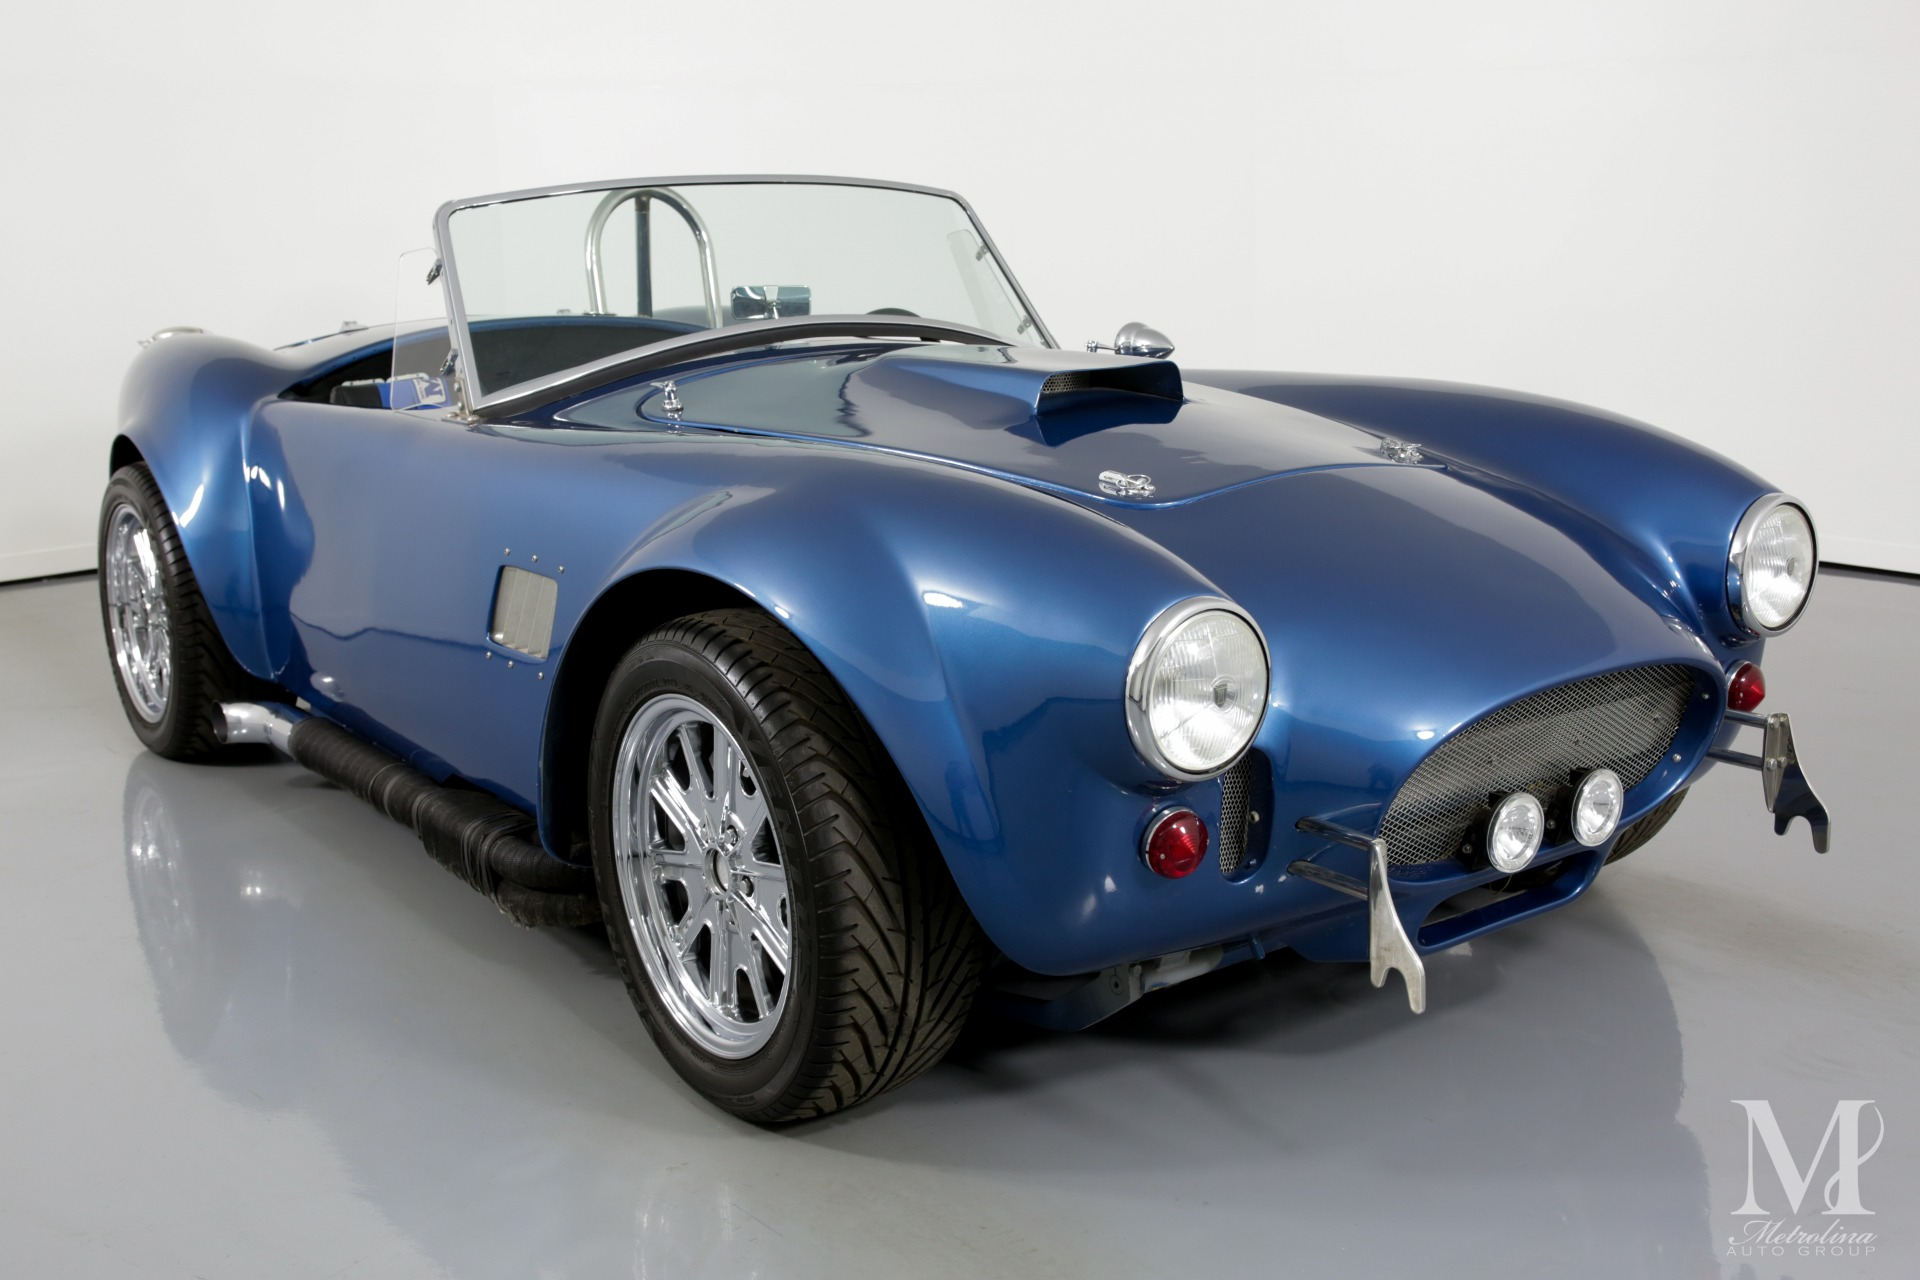 Used 1965 Shelby Cobra KIT CAR for sale $37,996 at Metrolina Auto Group in Charlotte NC 28217 - 2